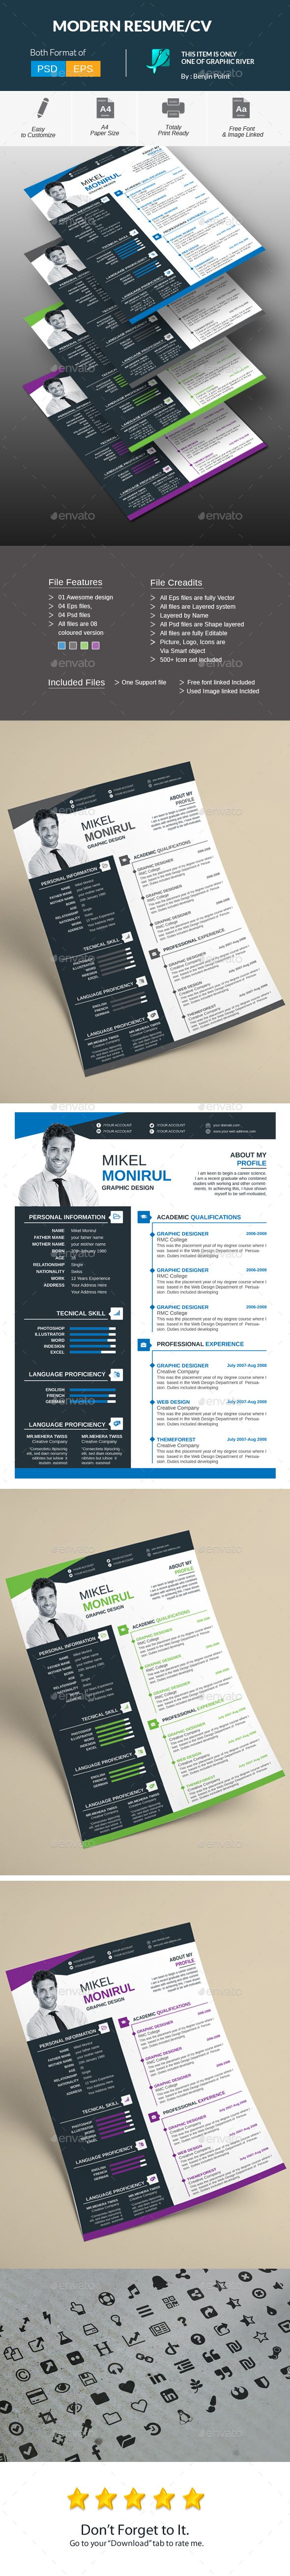 modern resumecv by benjinpoint modern resumecv creative clean high class resume resumecvsave your many time cost and impress your boss with this - Cv Resume Template